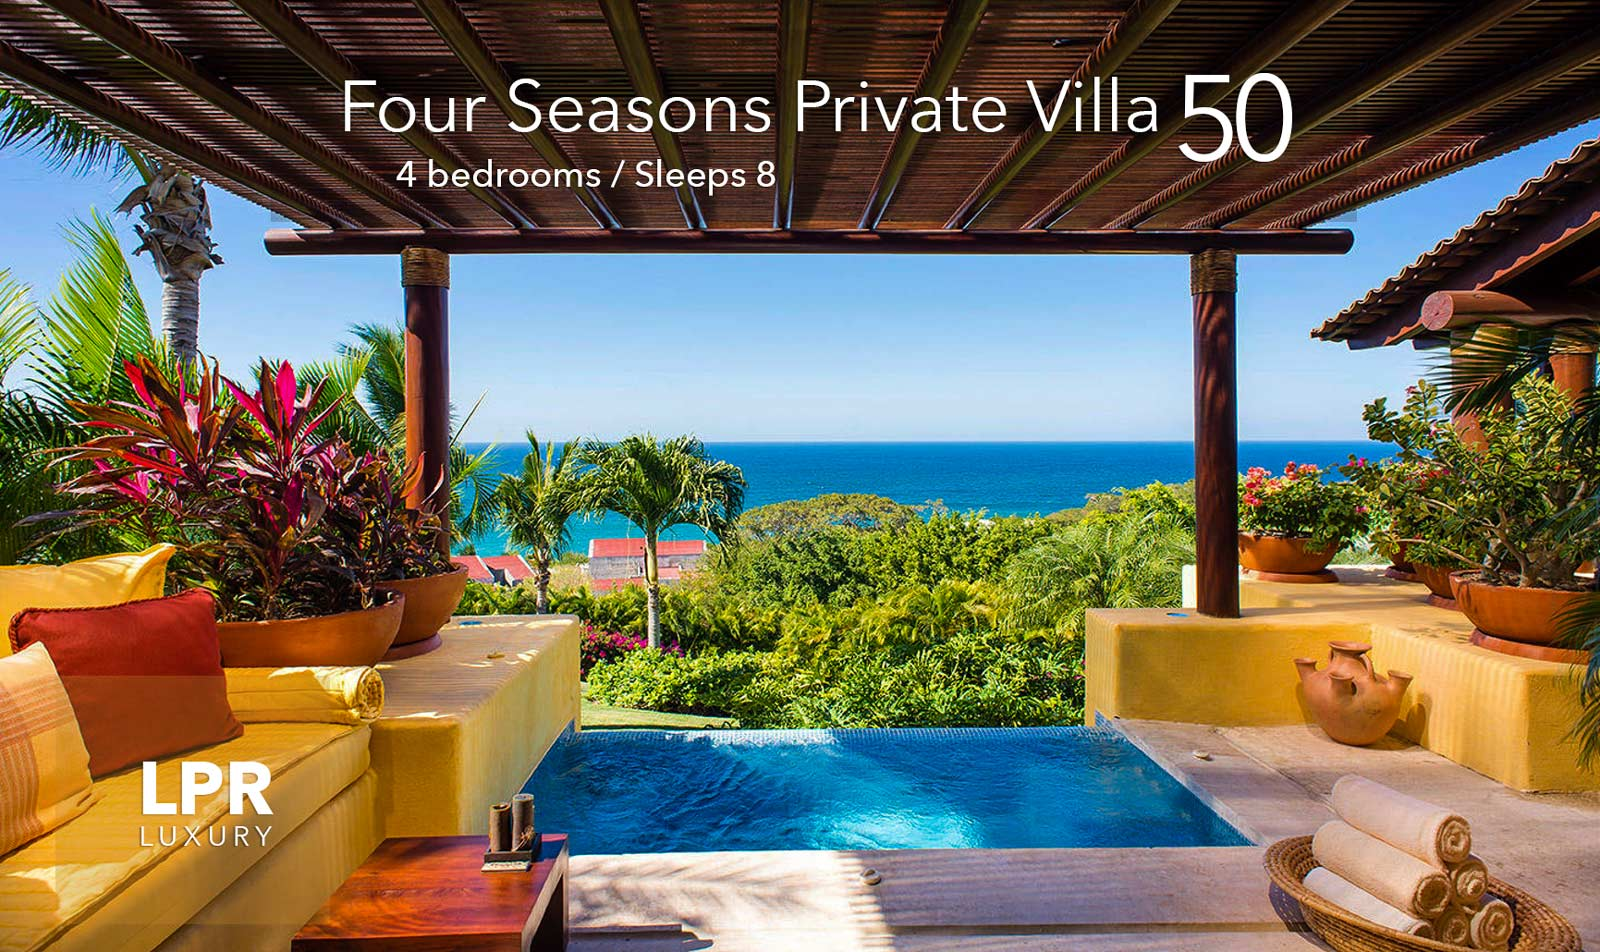 four seasons private villa 50 luxury punta mita real estate and vacation rentals mexico